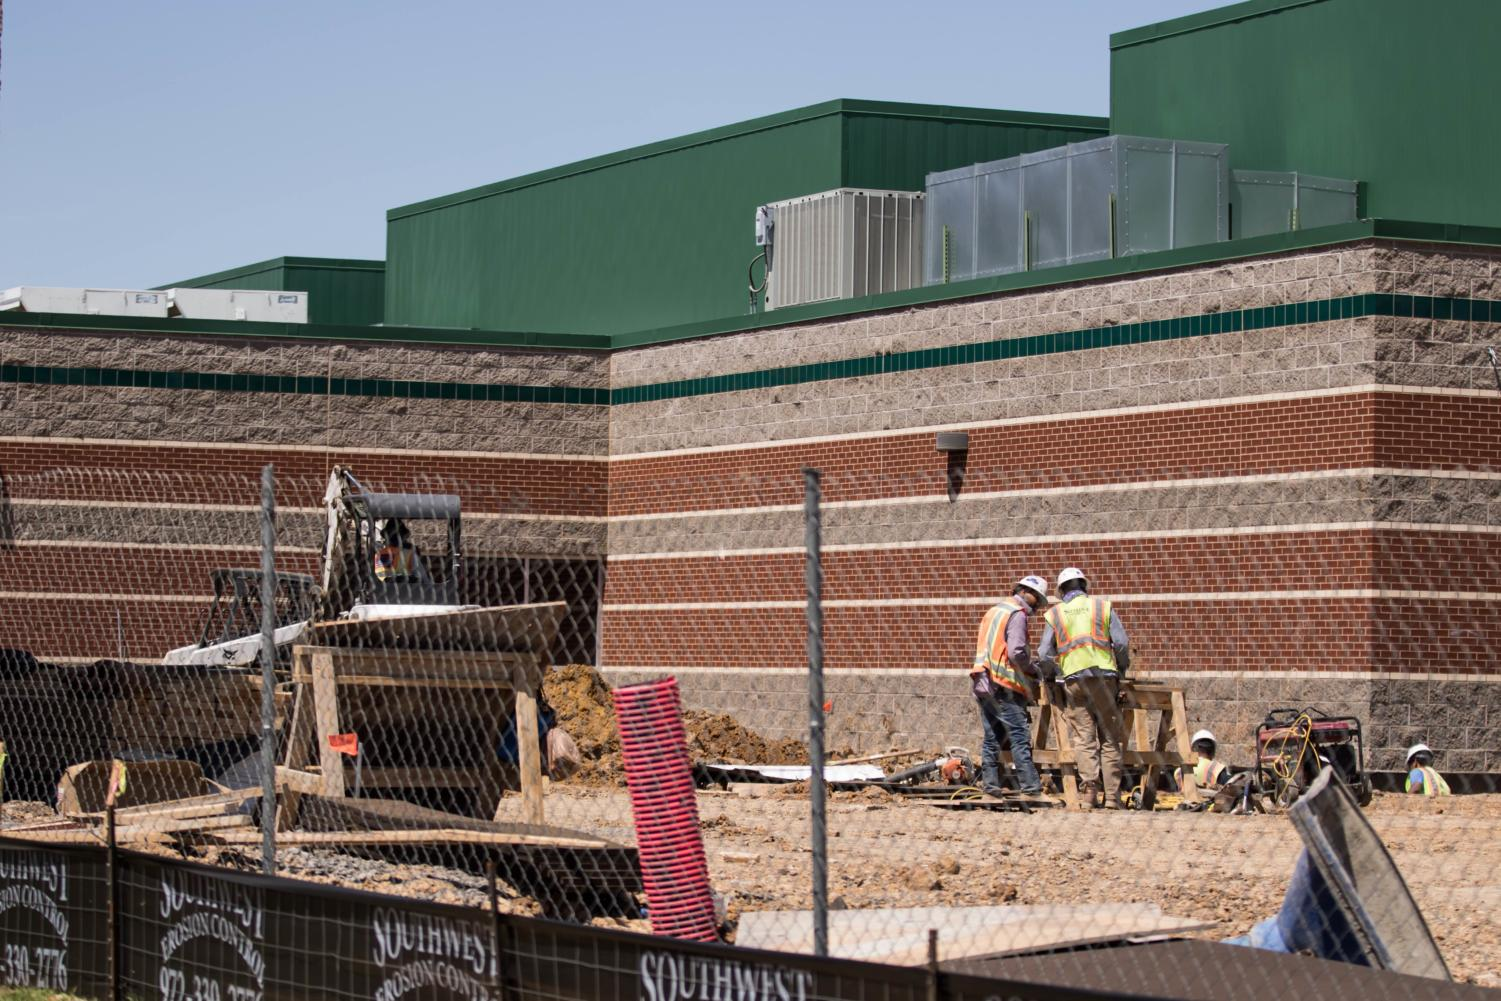 Construction is under way at Argyle High School in Argyle, TX on April 18, 2018. (Katy McBee  / The Talon News)